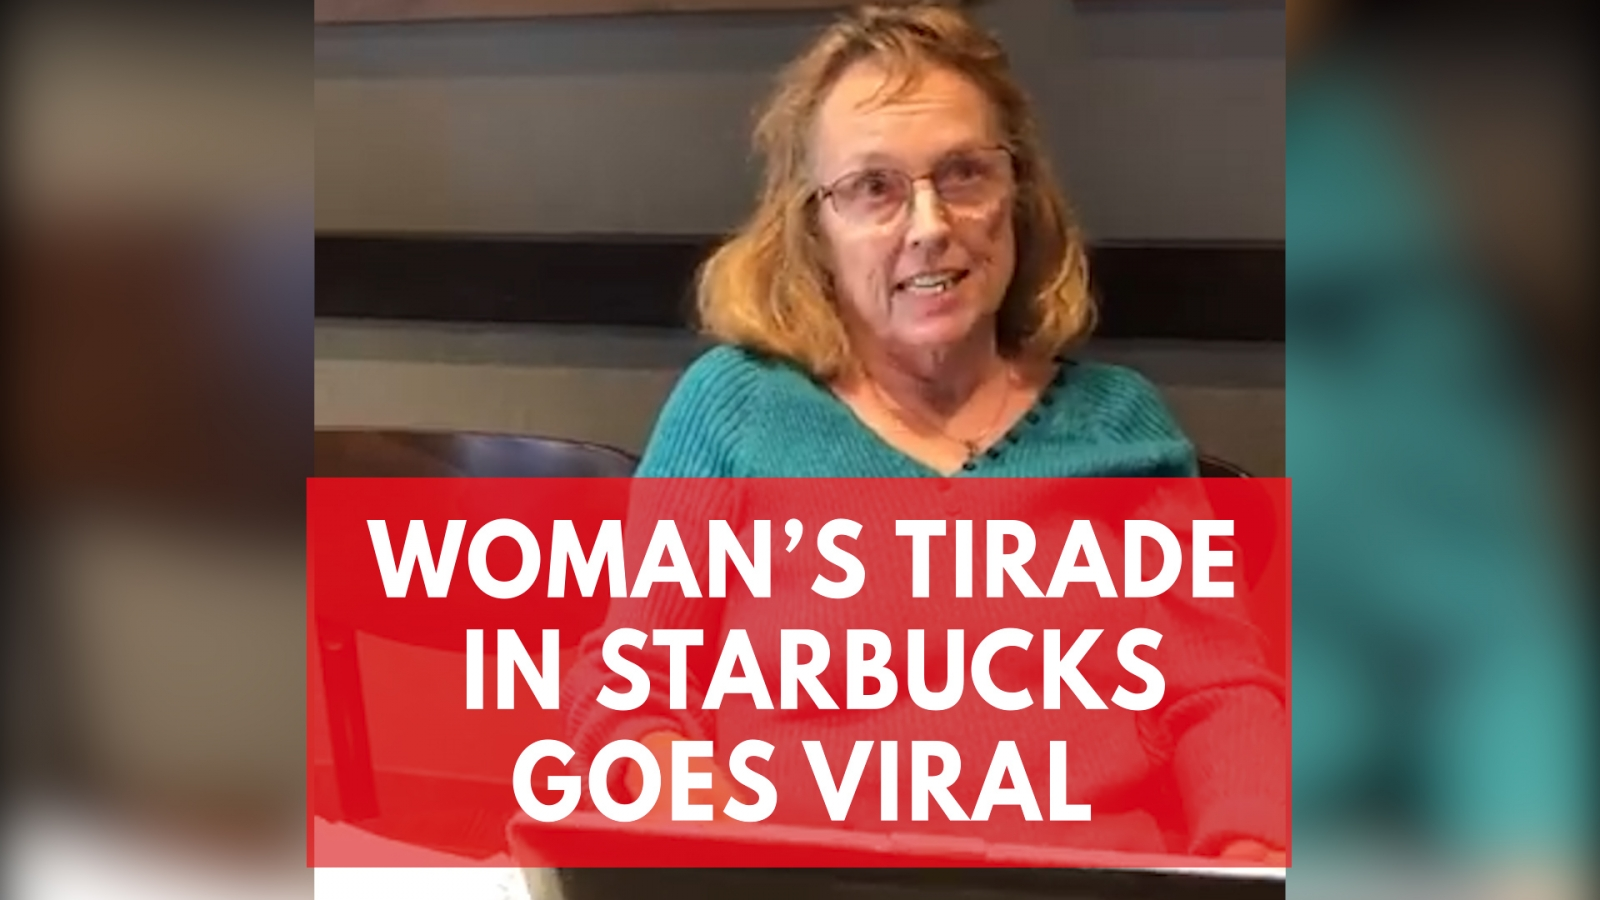 use-english-only-woman-launches-starbucks-tirade-against-customers-speaking-korean